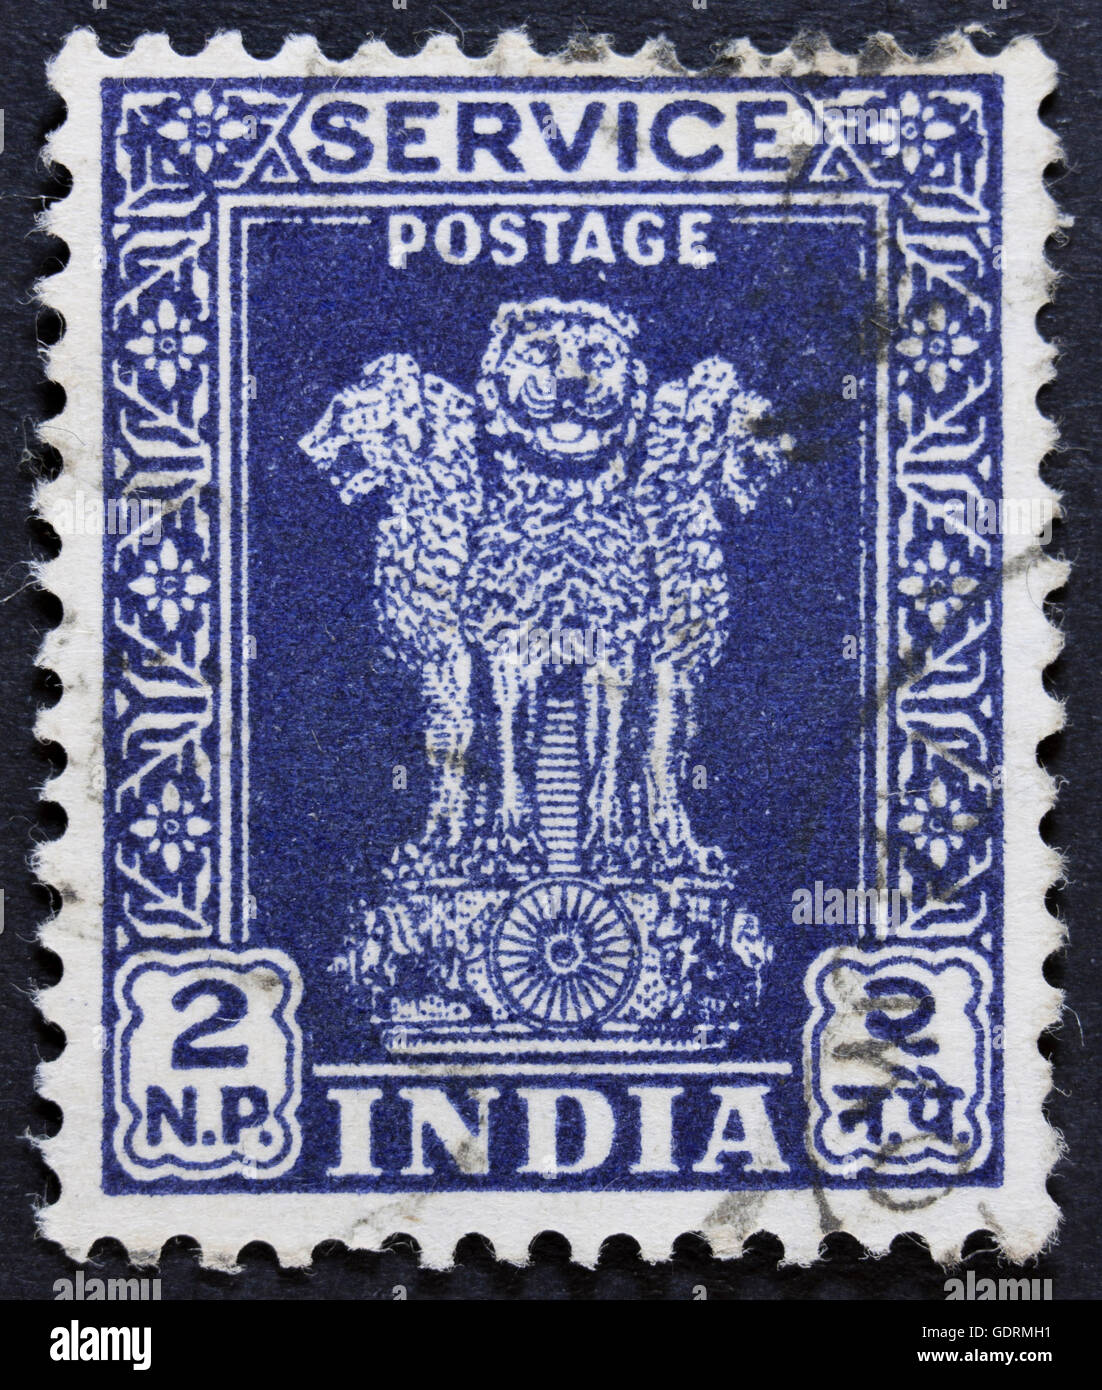 INDIA - CIRCA 1967: A stamp printed in India shows four Indian lions capital of Ashoka Pillar, without inscription, - Stock Image